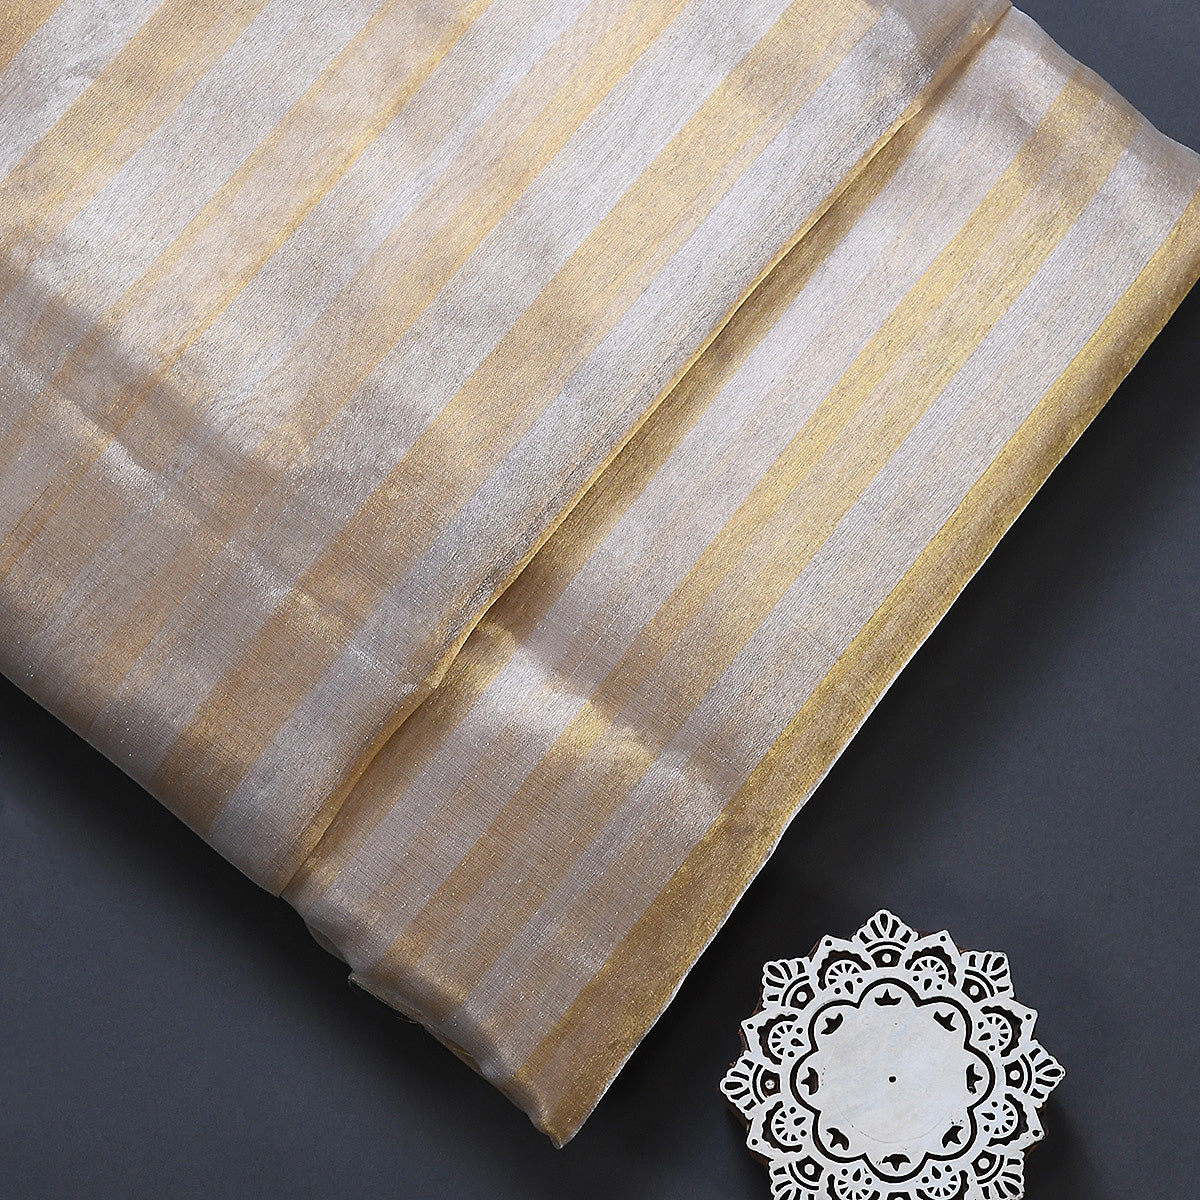 Handwoven Silver and Gold Tissue Fabric Woven in Chanderi